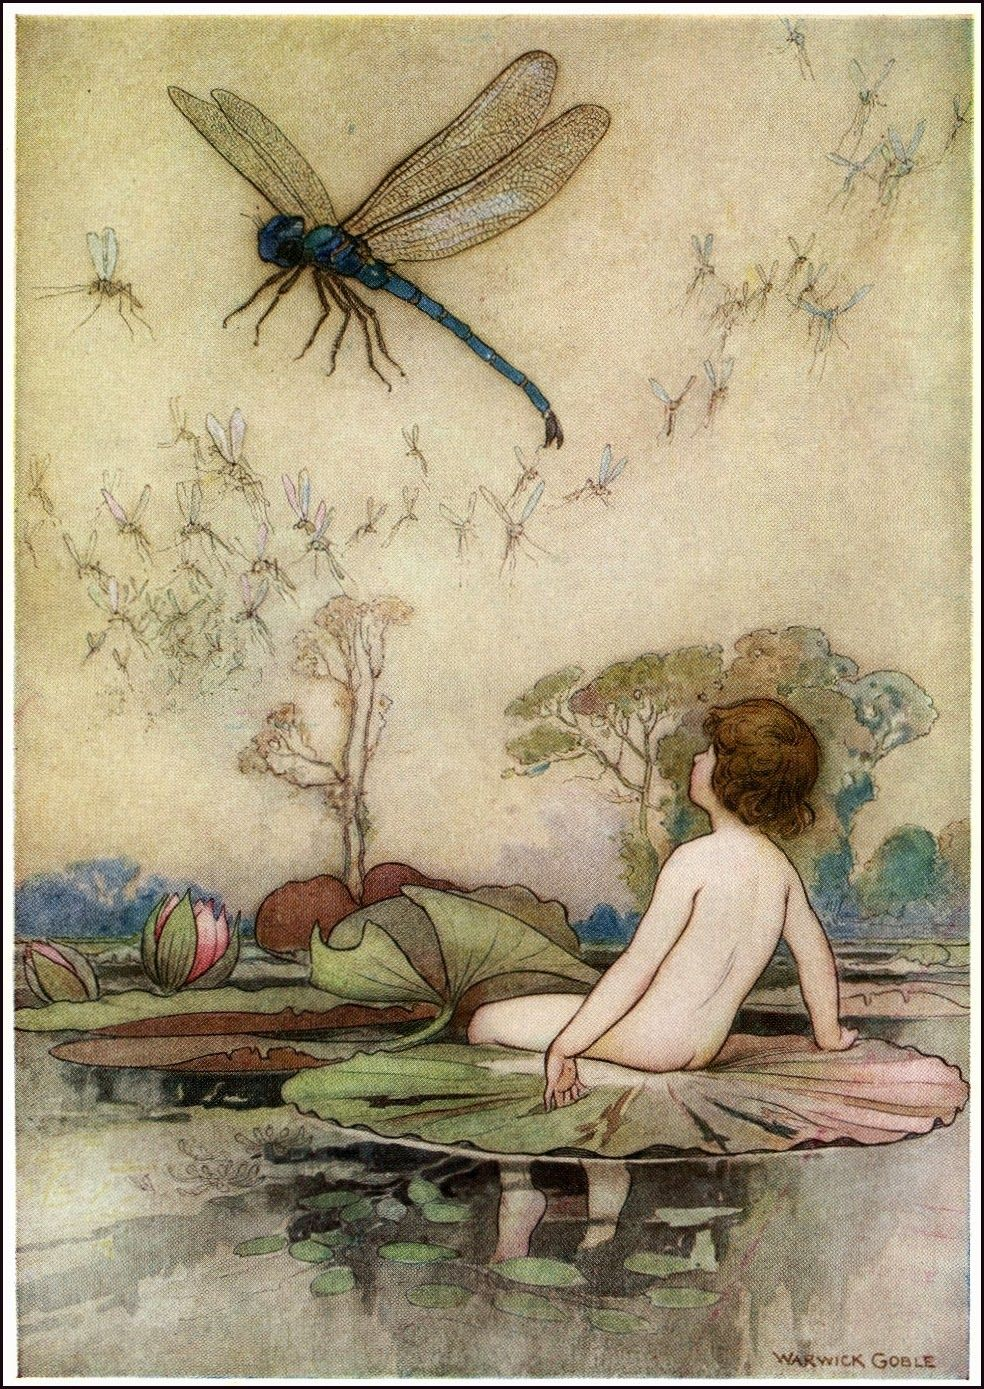 By Warwick Goble 1862 1943 From The Water Babies 1924